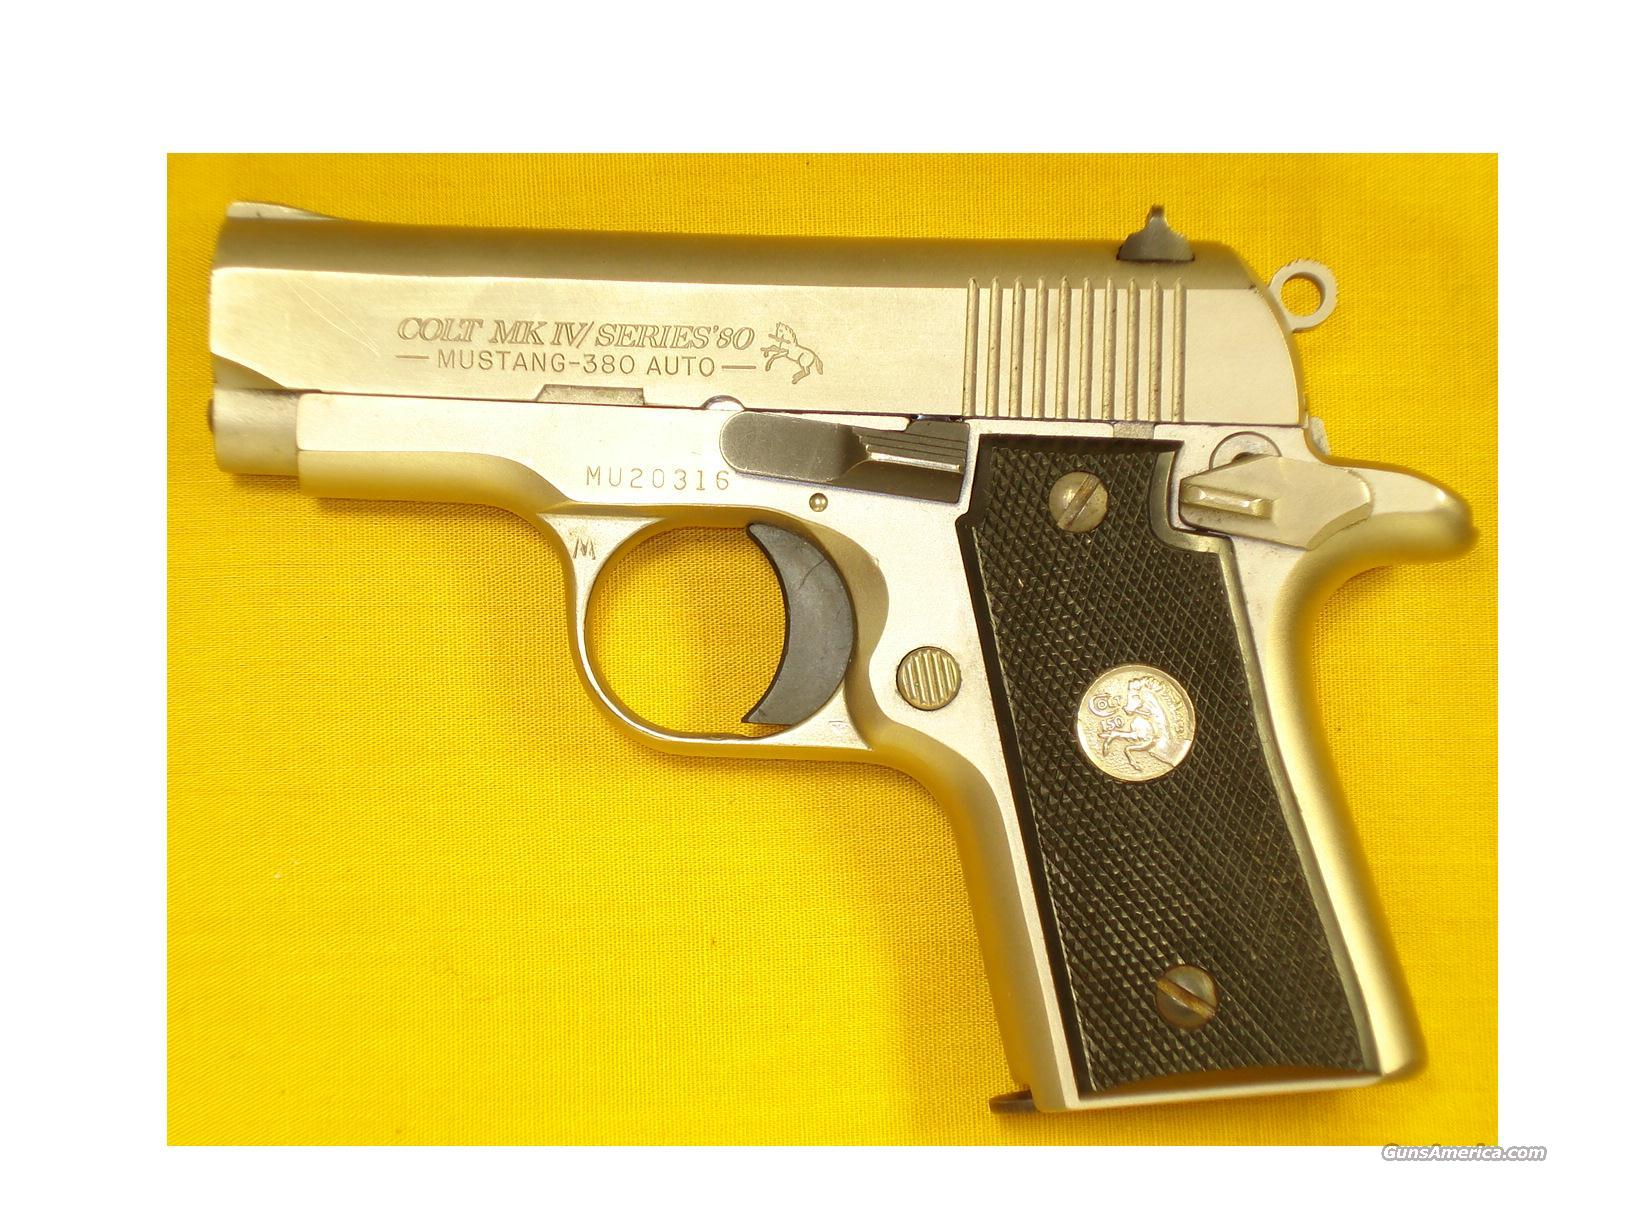 "COLT MUSTANG .380 2 3/4"" ELECTROLESS NICKEL  Guns > Pistols > Colt Automatic Pistols (.25, .32, & .380 cal)"